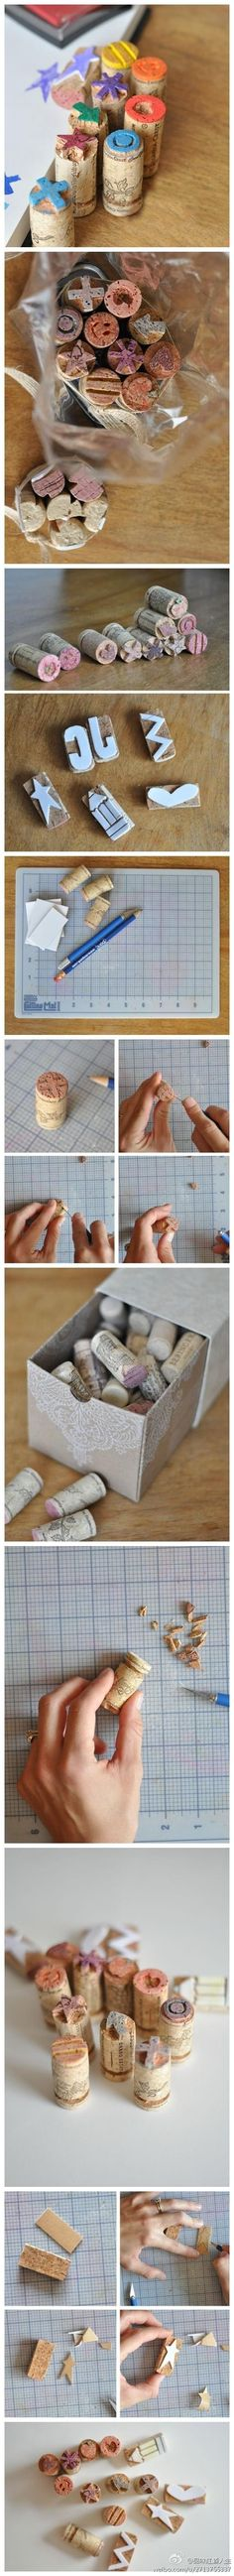 Cork stamps! Collect corks and craft stamp ideas ready for printing fun!